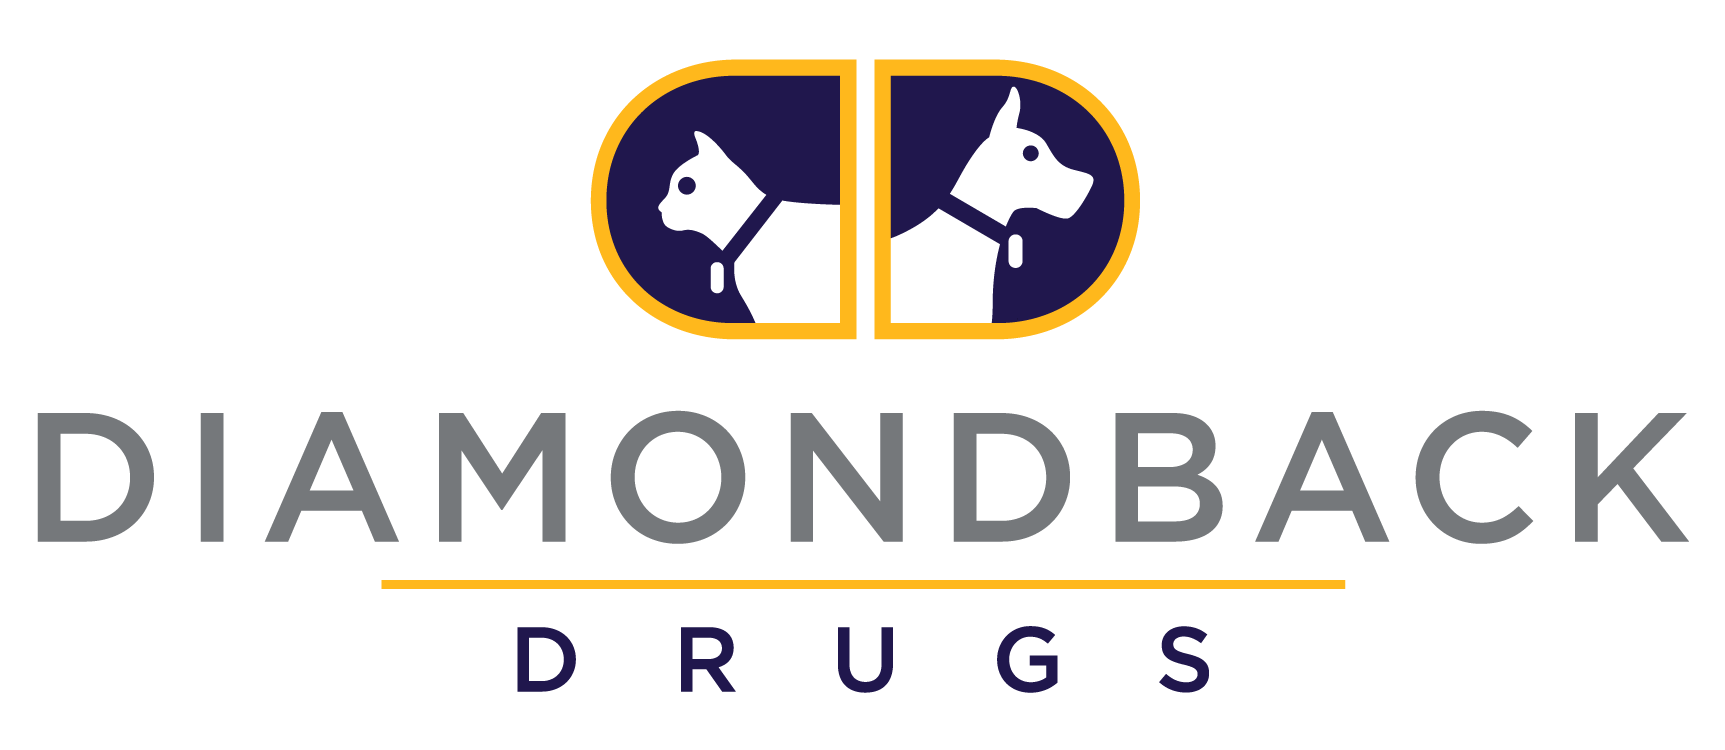 Diamondback Drugs Earns Industrys Coveted Pcab Accreditation